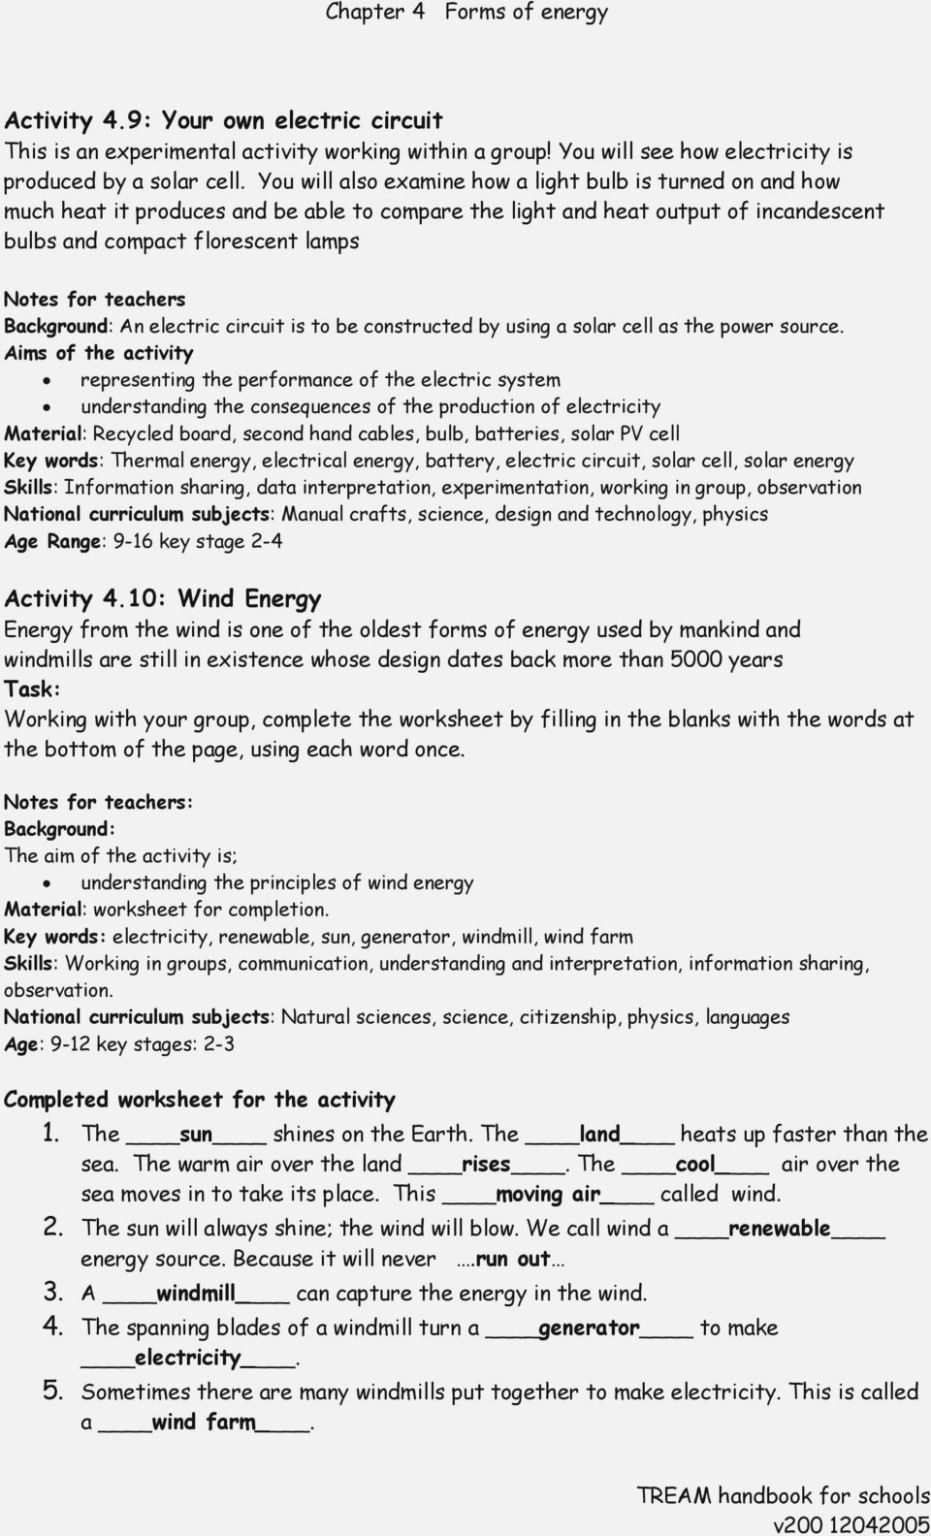 Specific Heat Problems Worksheet With Answers  Worksheet